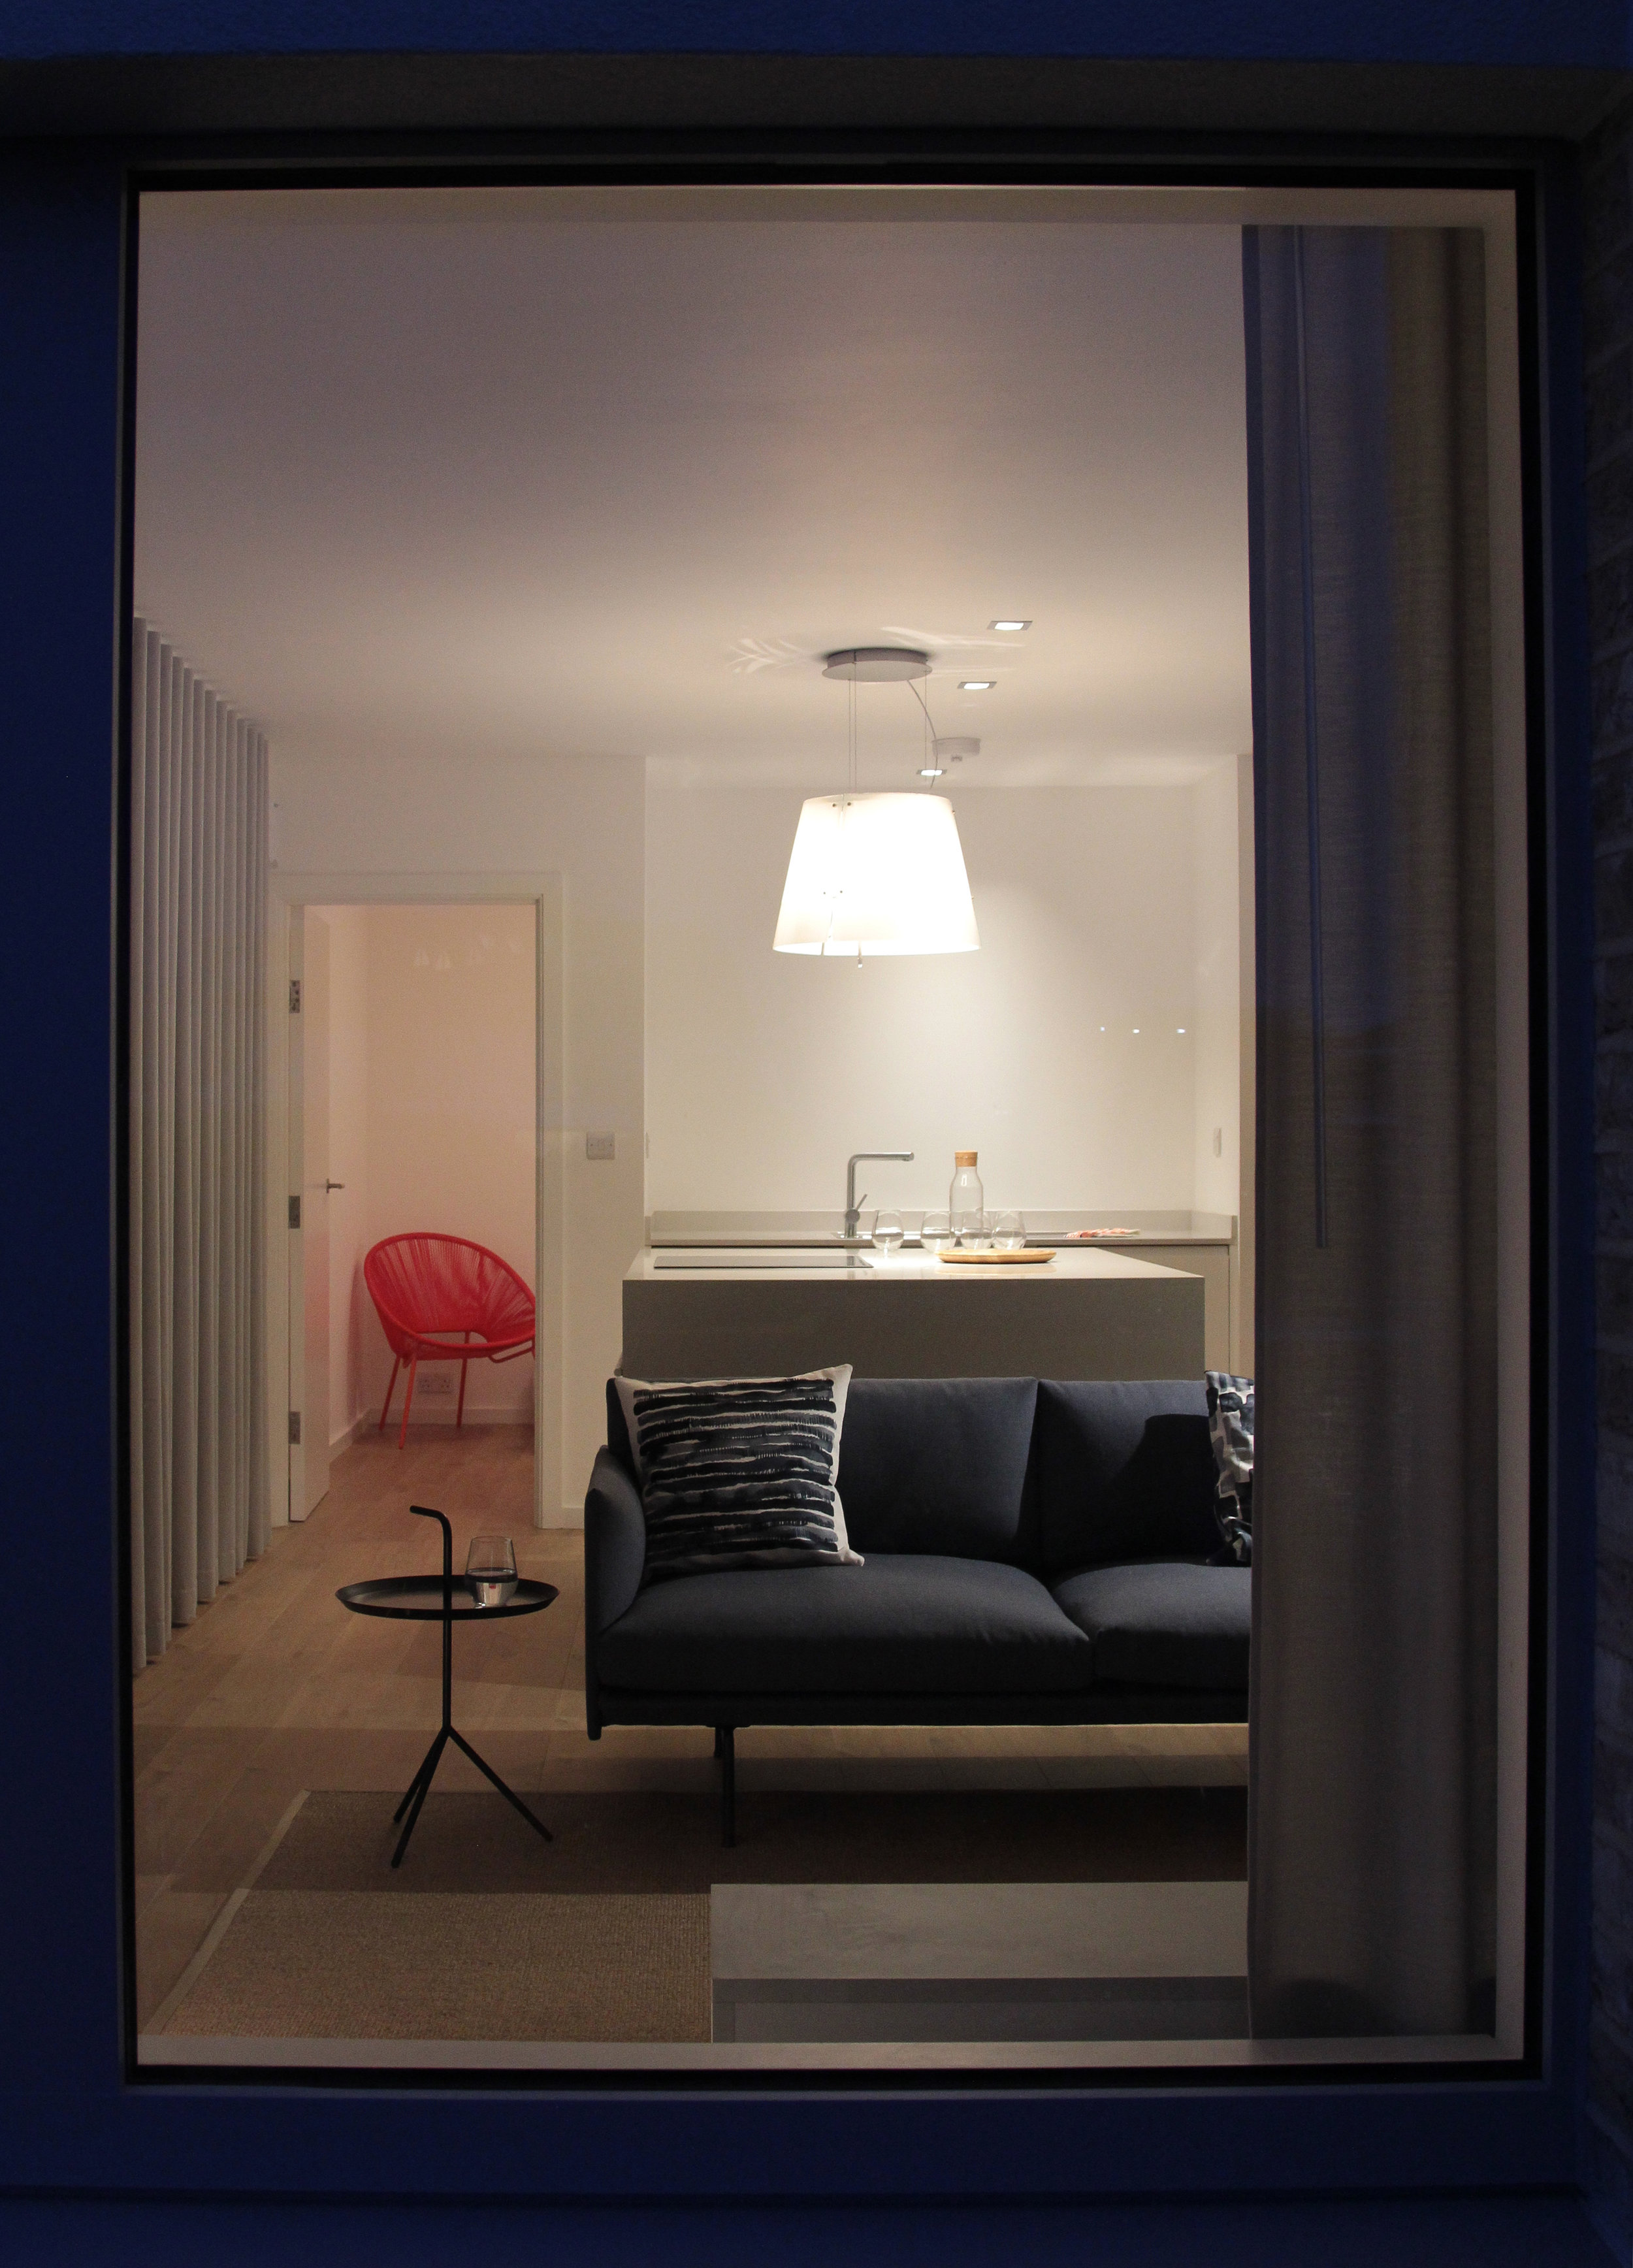 BreakPoint 'Marram' img20 - Evening View into living area from outside.jpg